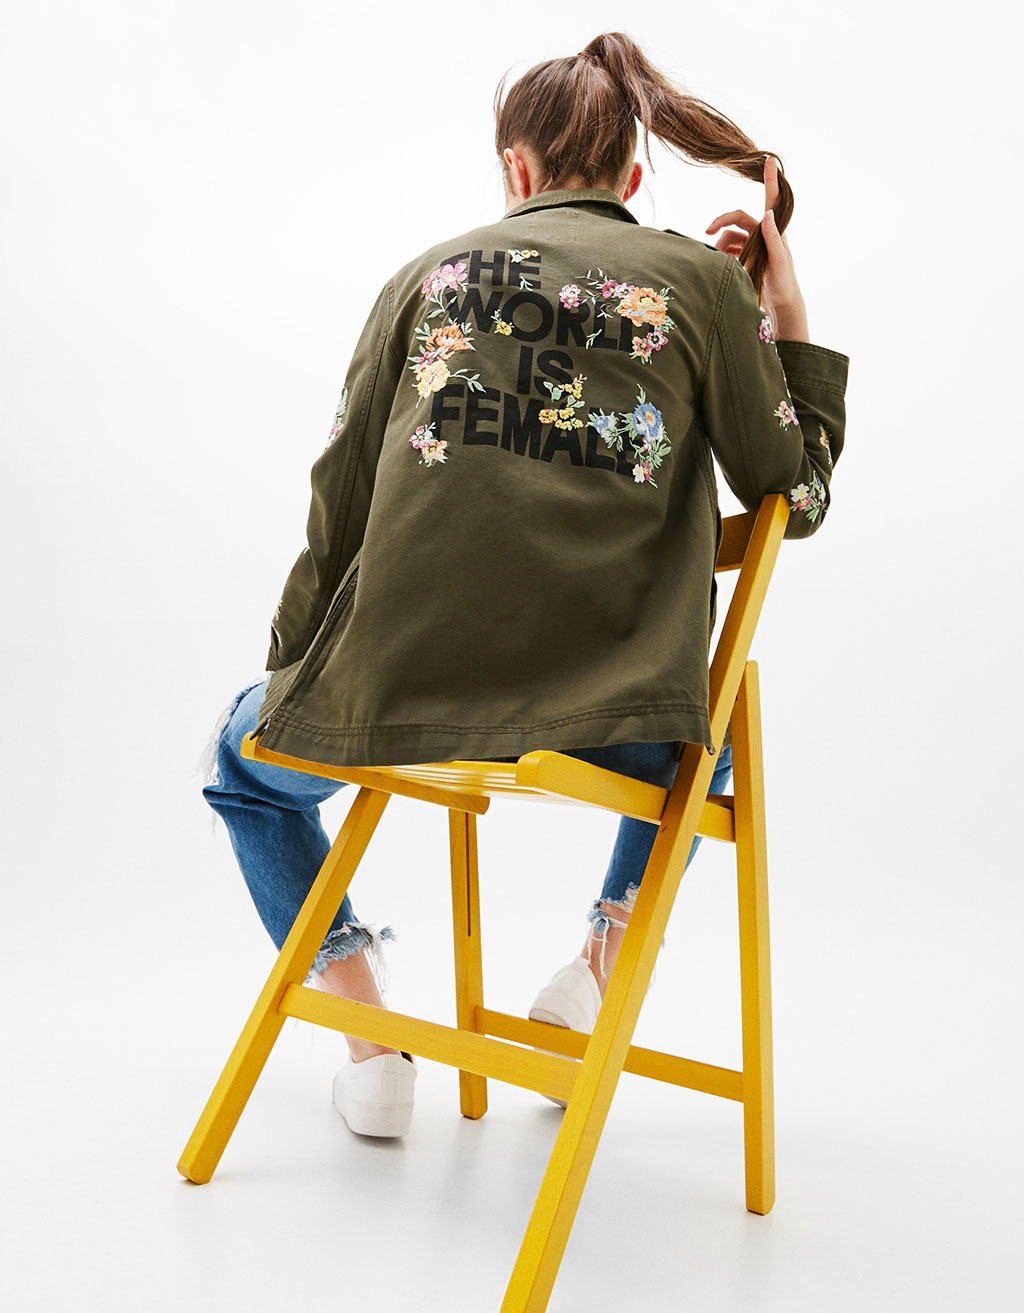 Safari jacket with floral embroideries and back print